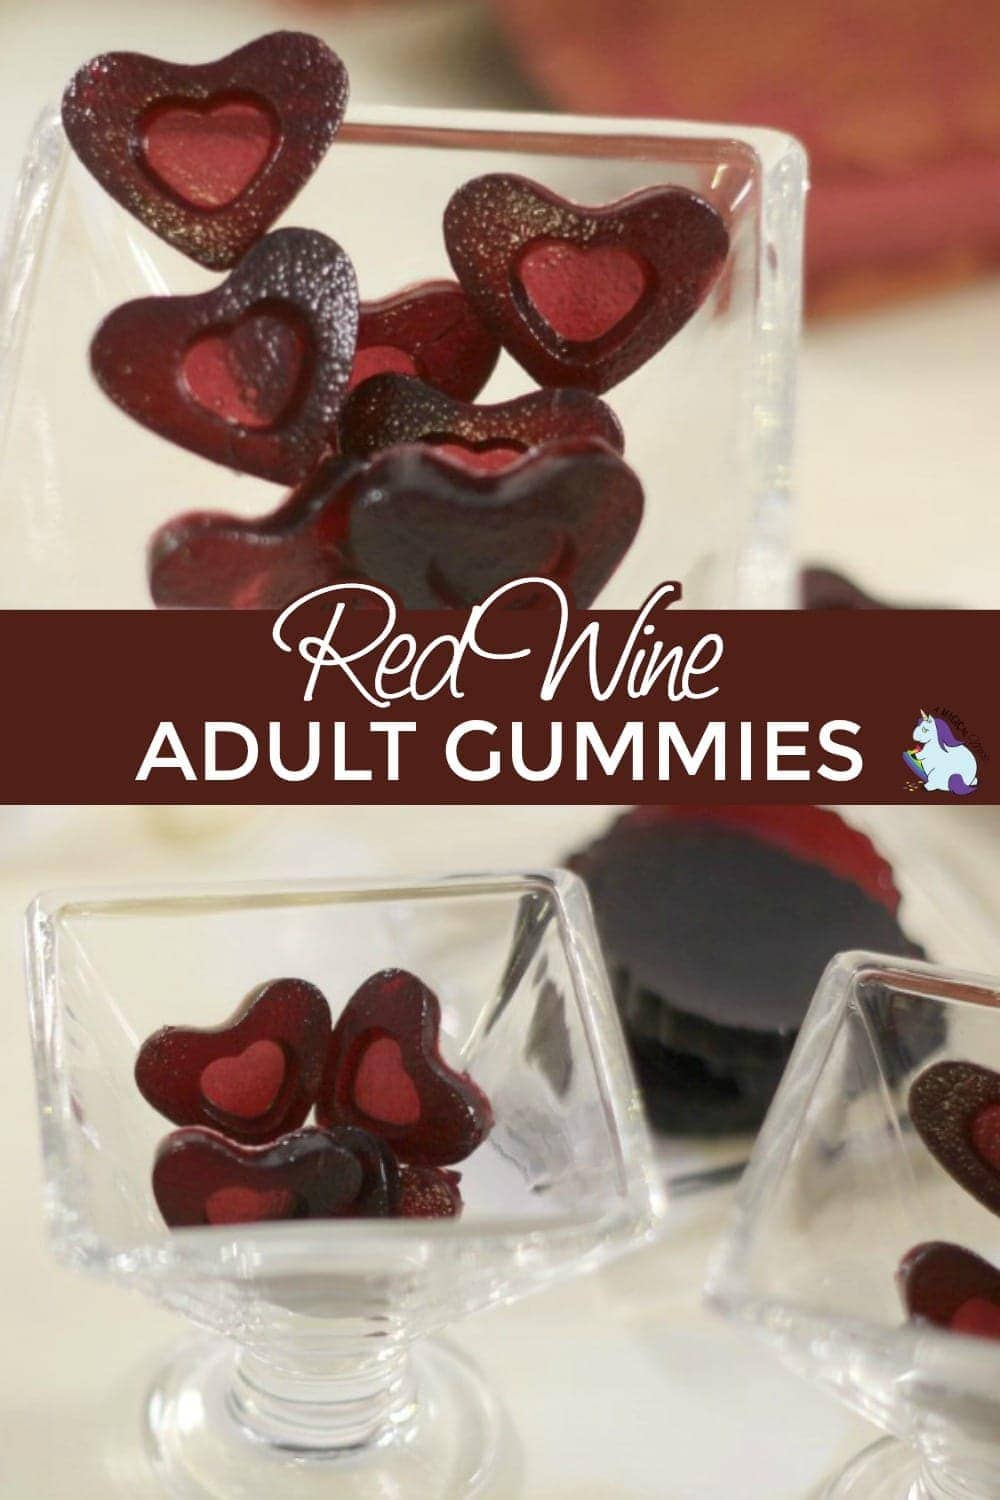 heart gummies in decorative dishes